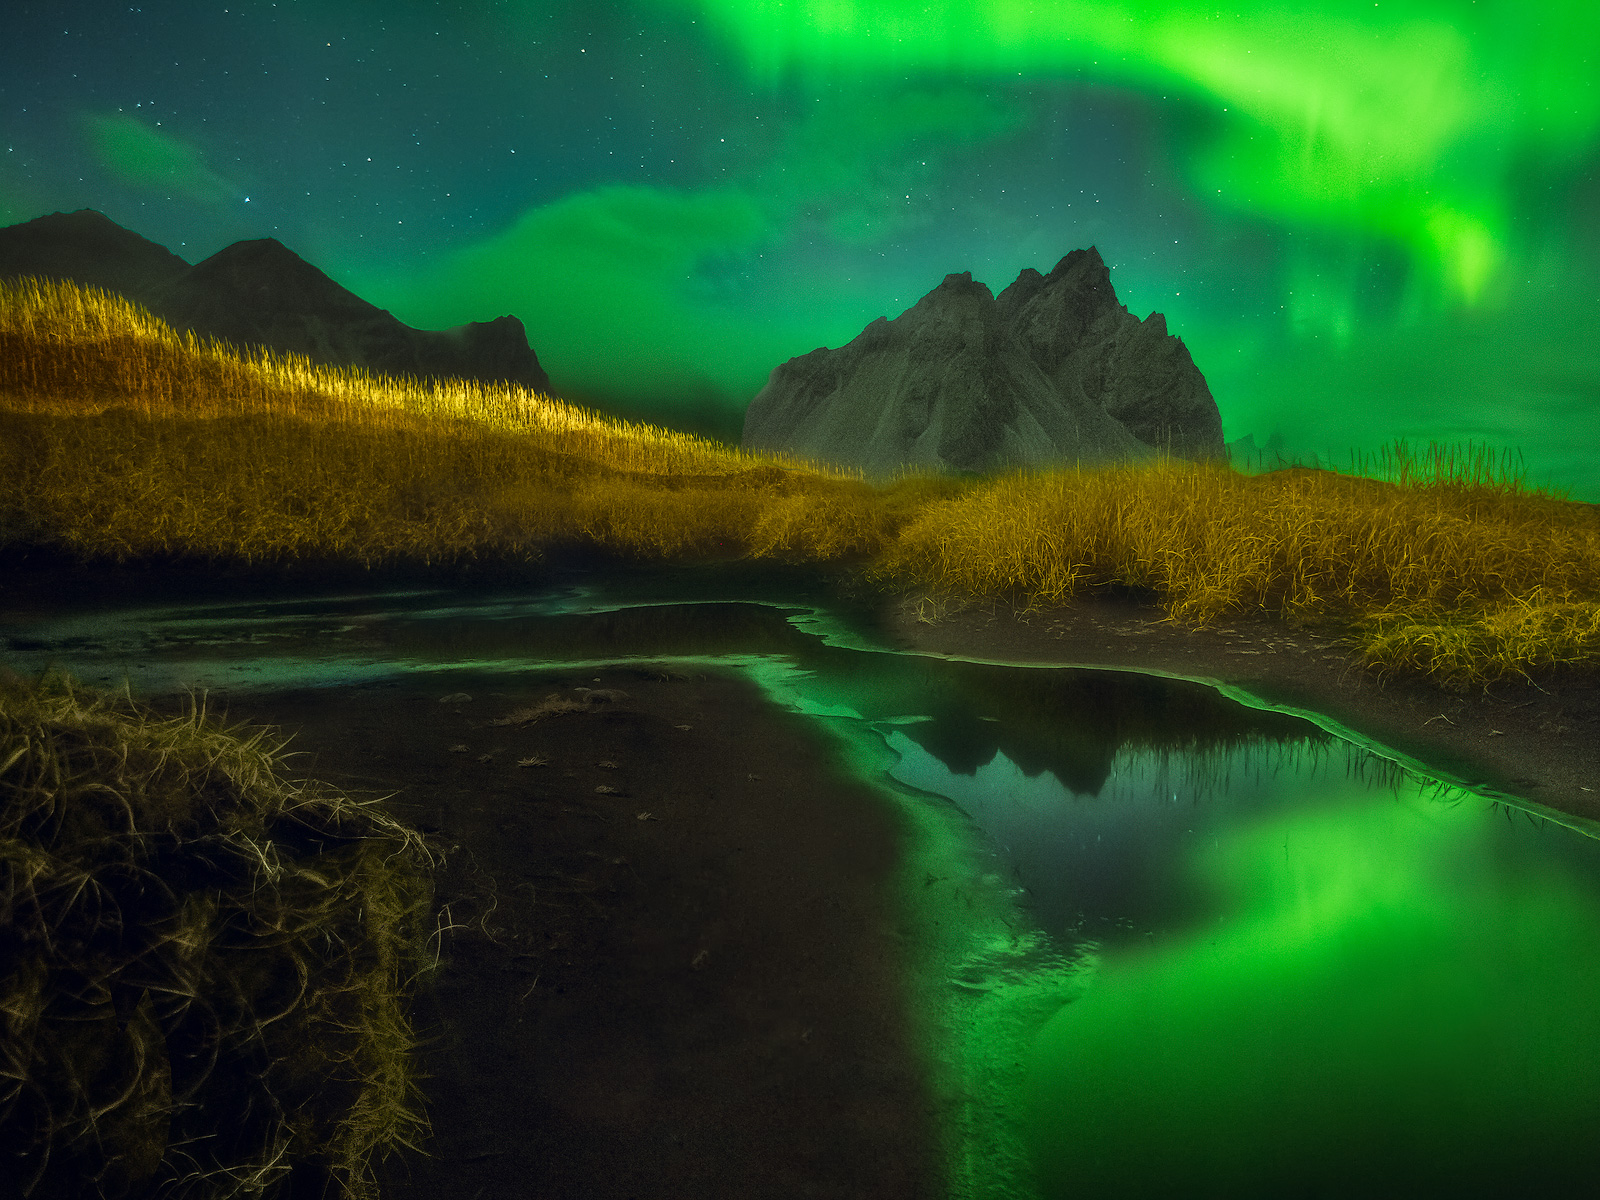 The Northern Lights illuminating the sky over southeastern Iceland.